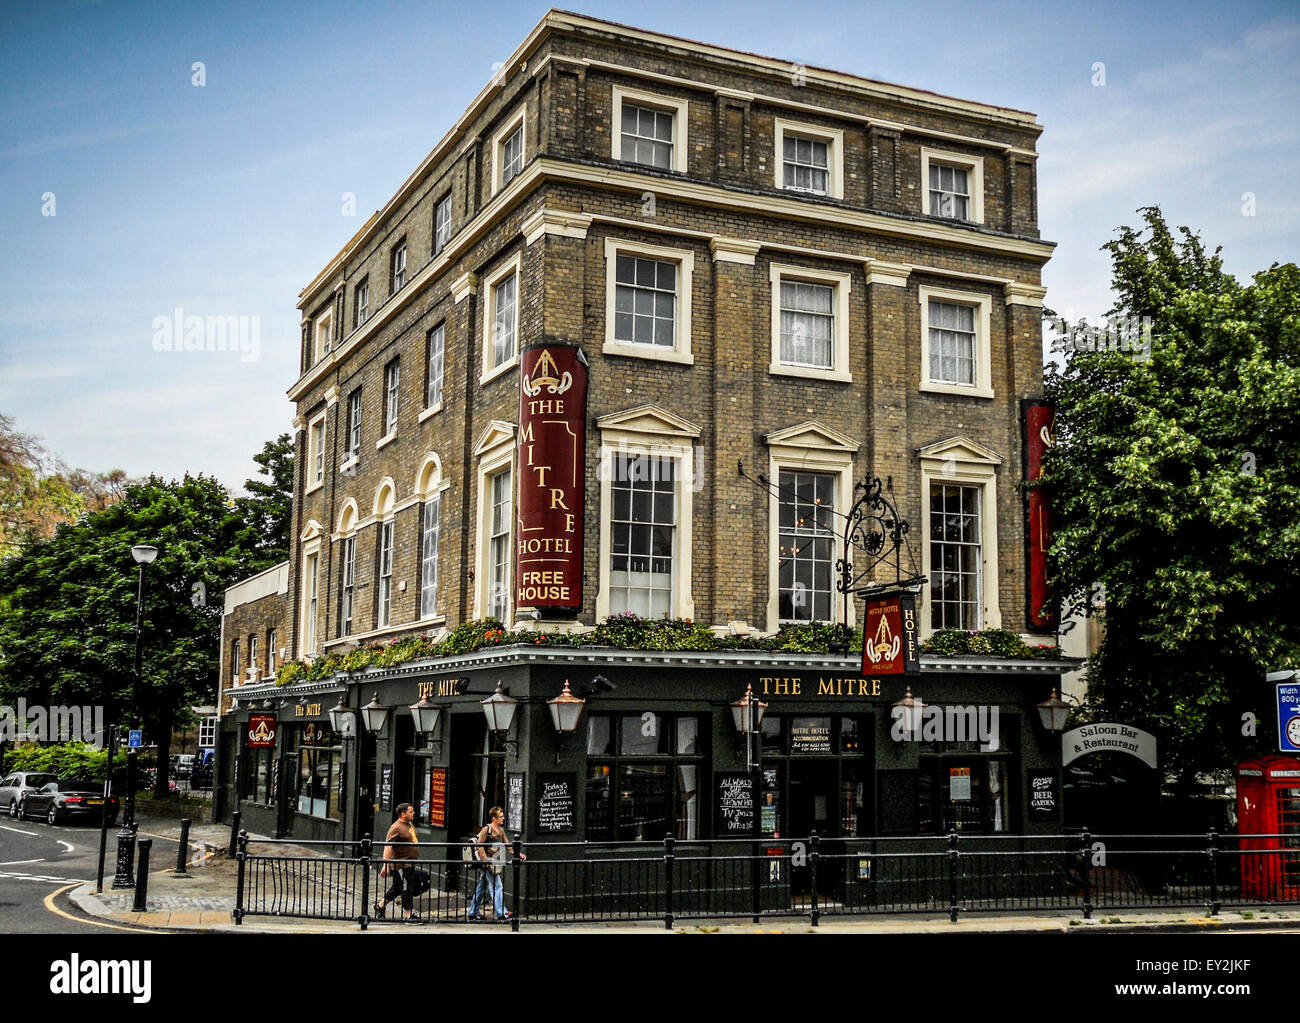 The Mitre Hotel London